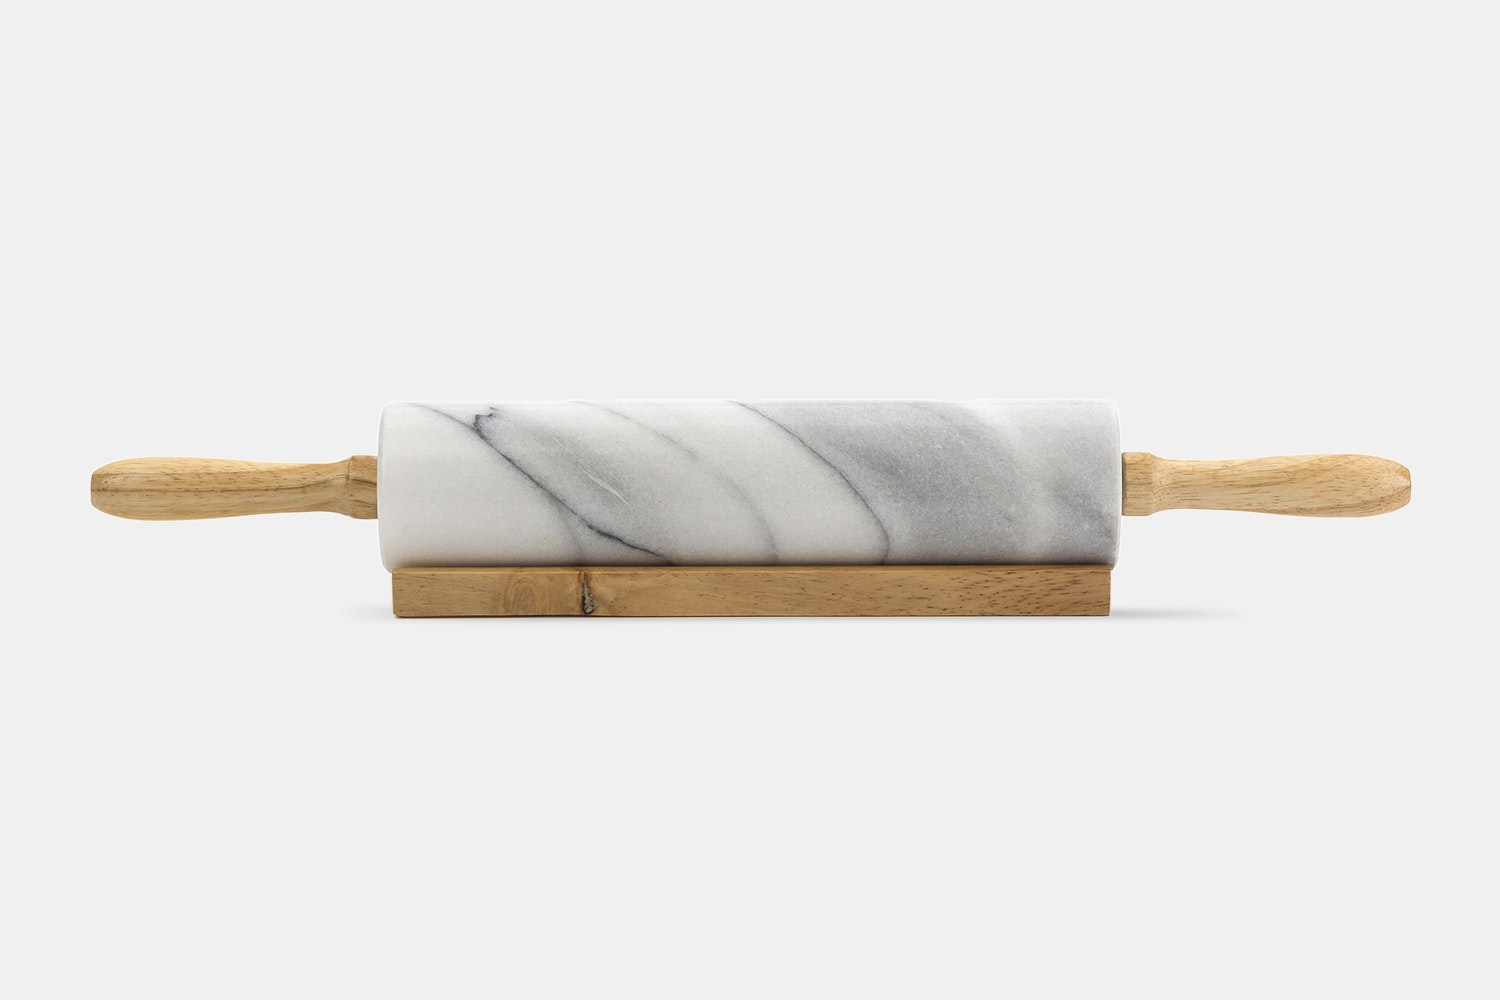 RSVP Marble Rolling Pin & Stand